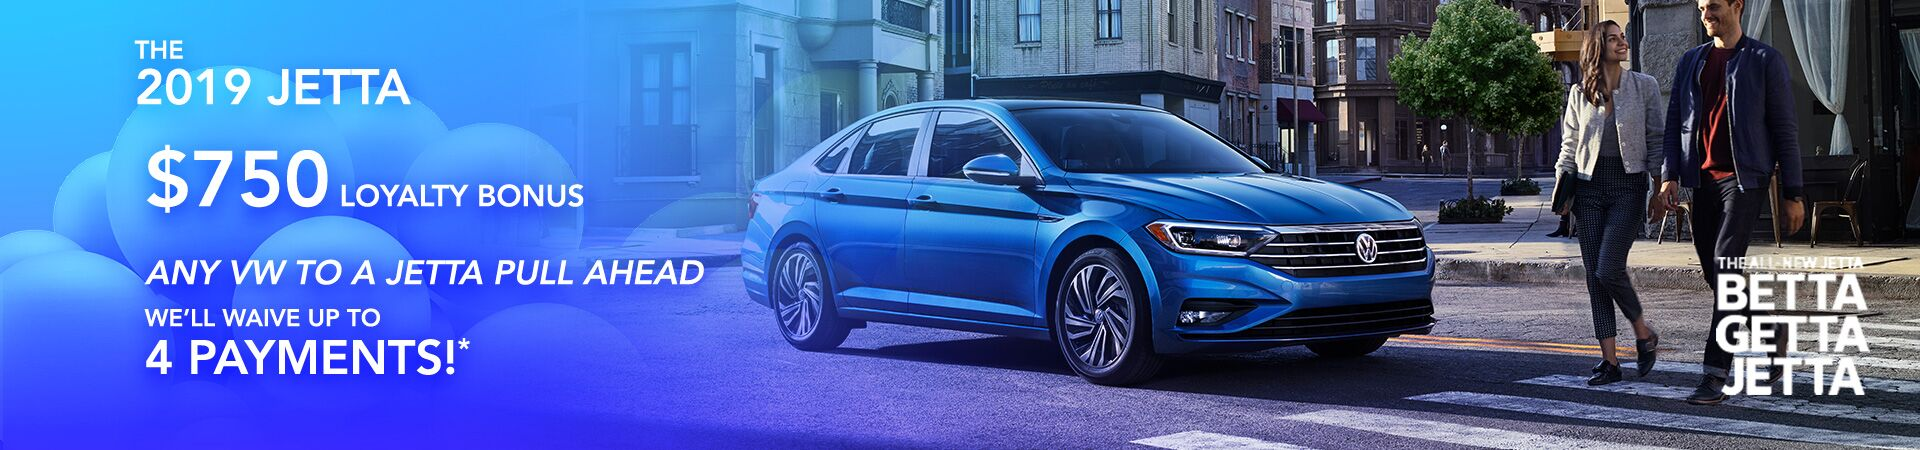 2019 Jetta Loyalty and Pull Ahead Slide